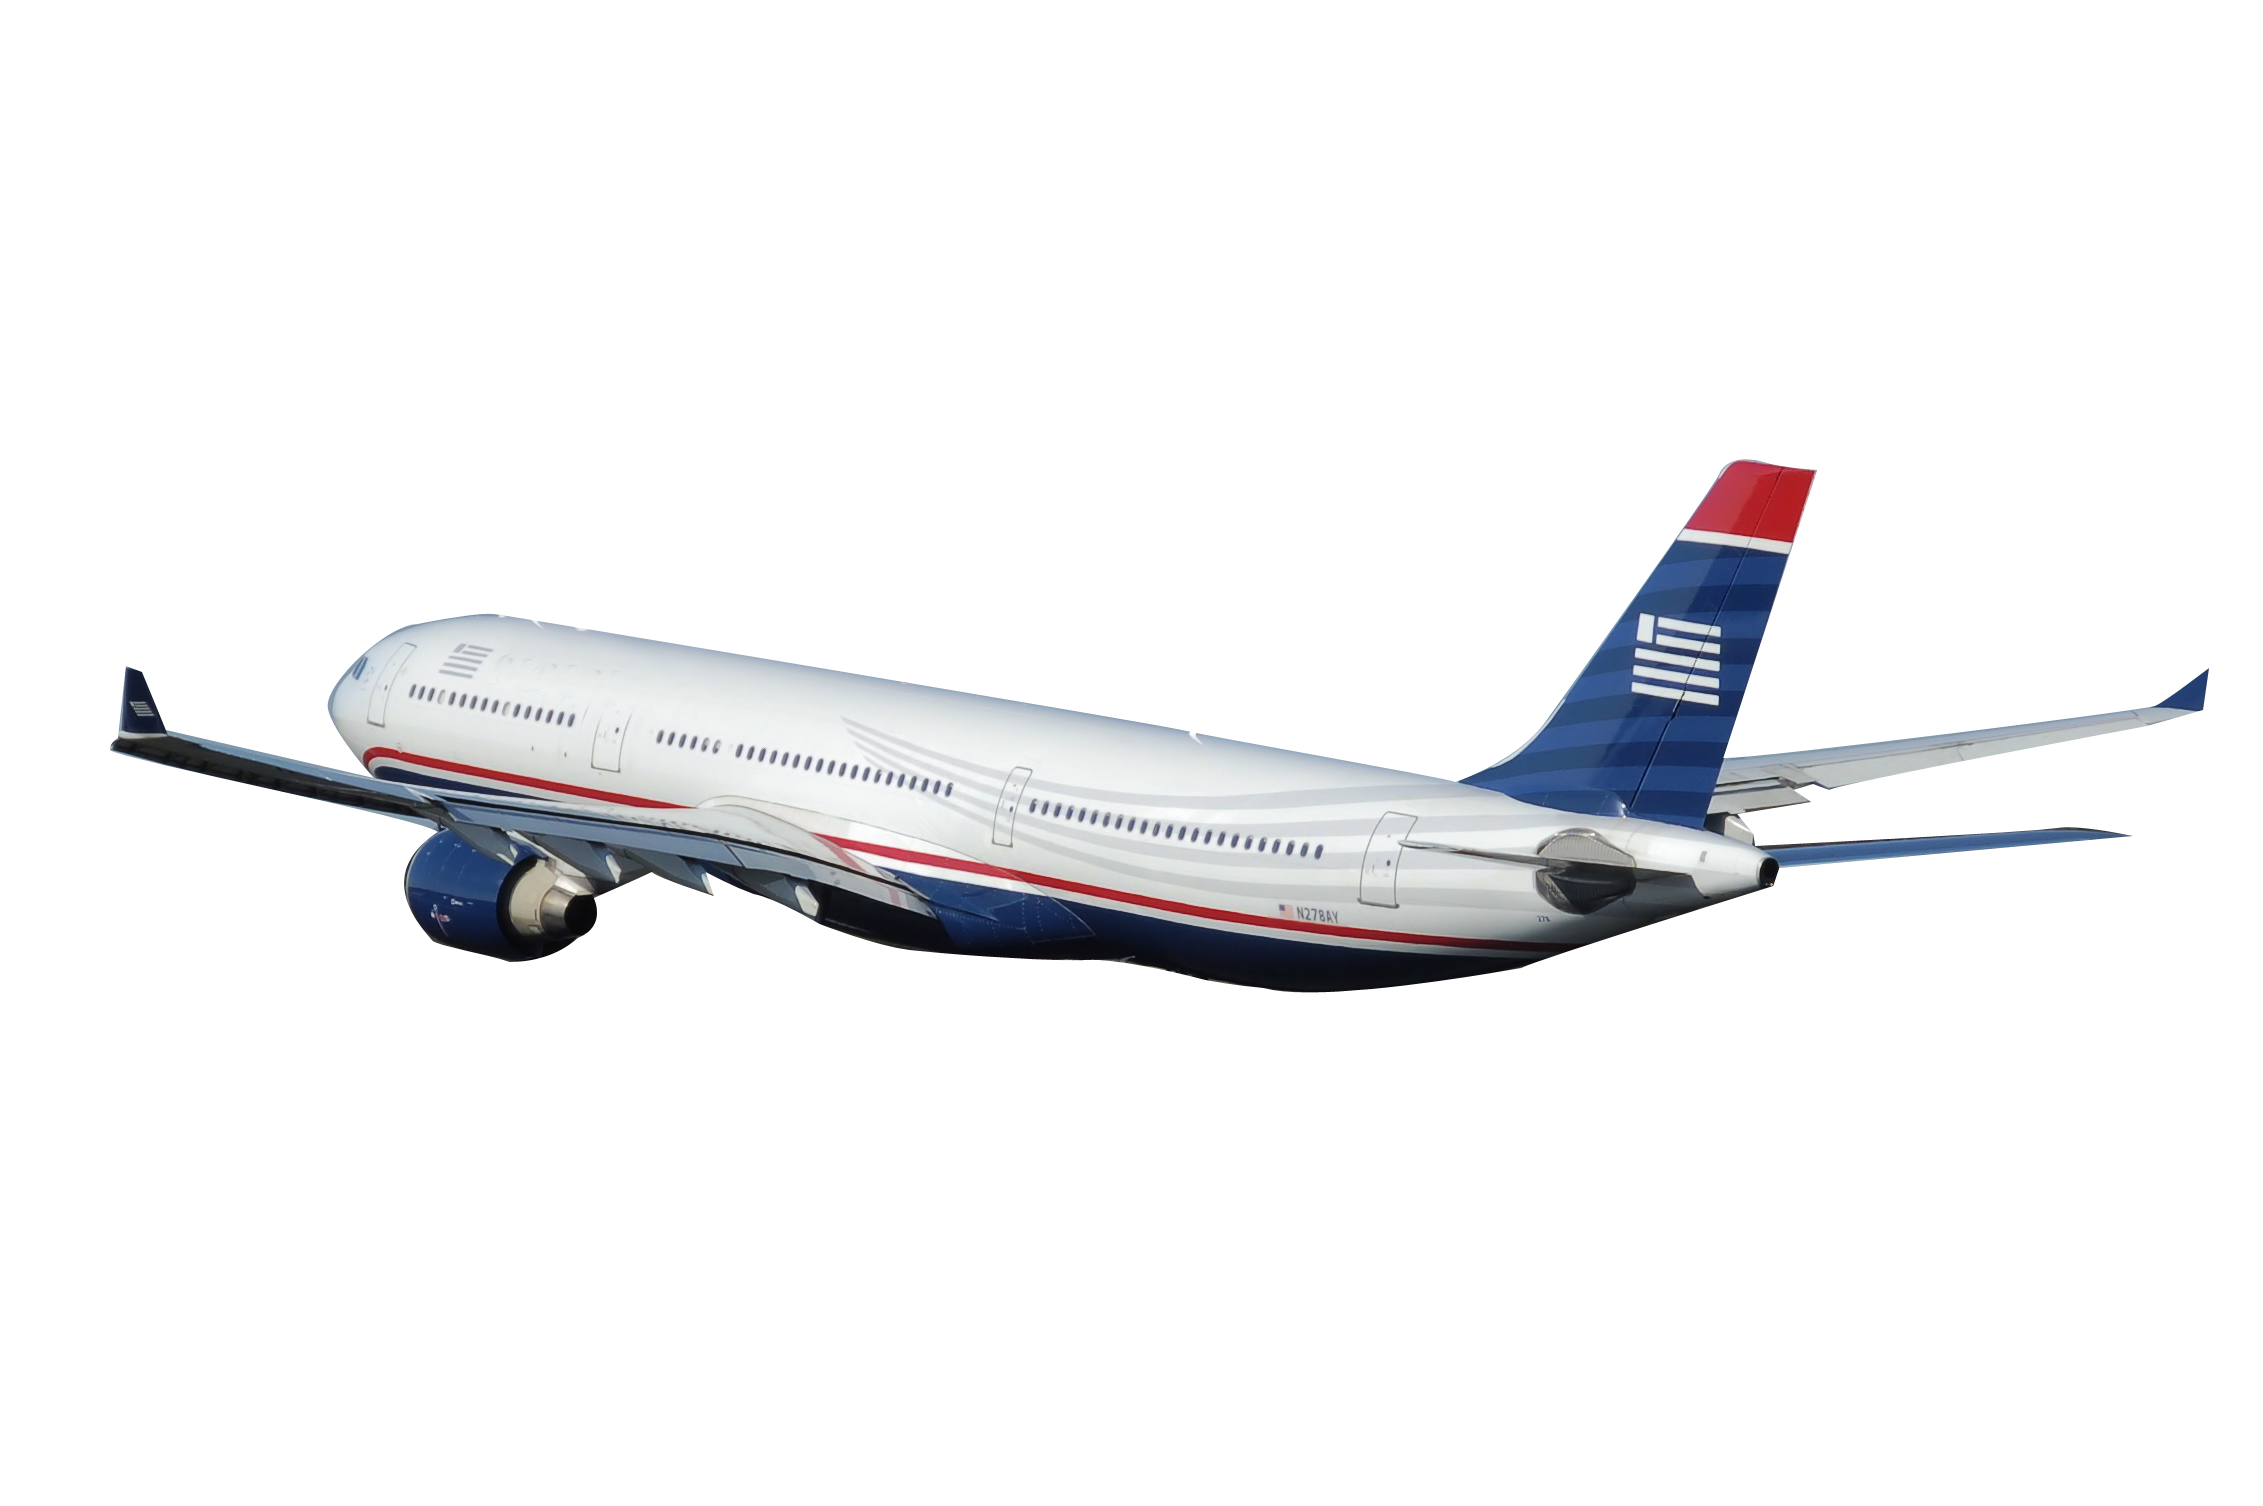 Aircraft vector airline. Airplane with banner png